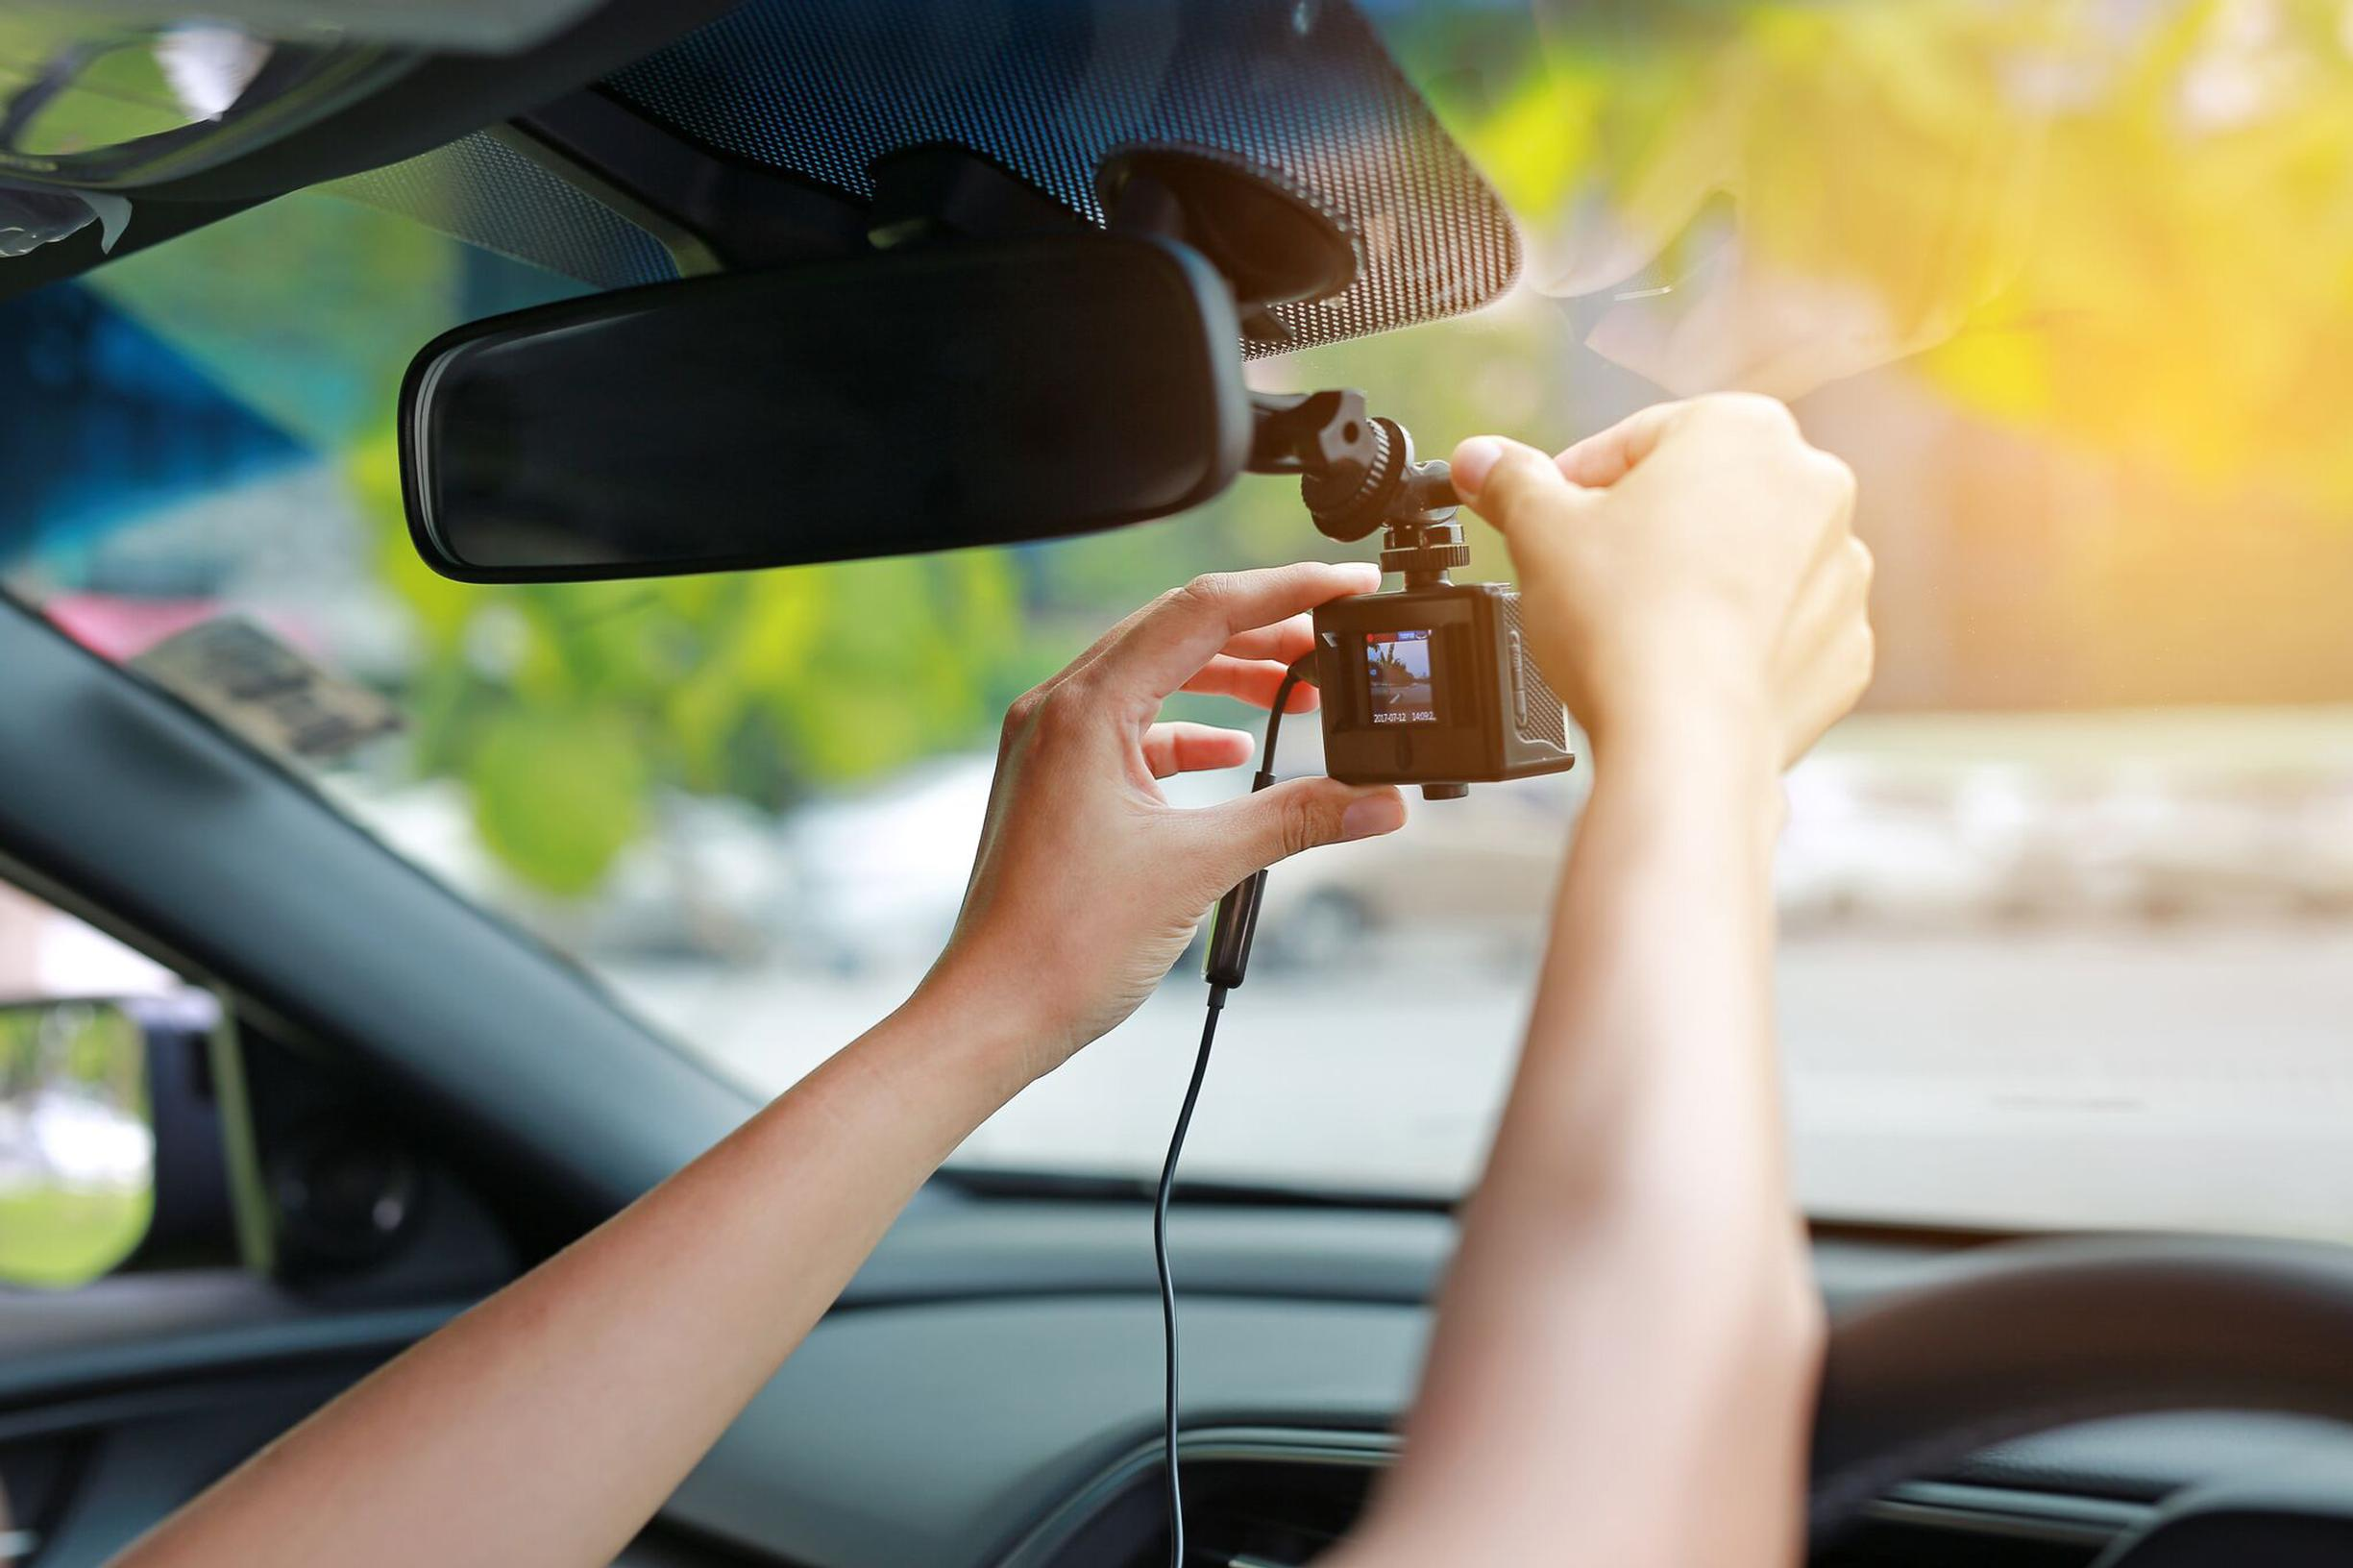 The use of dashcam footage in insurance cases has trebled in the past two years, reports accident management company Accident Exchange